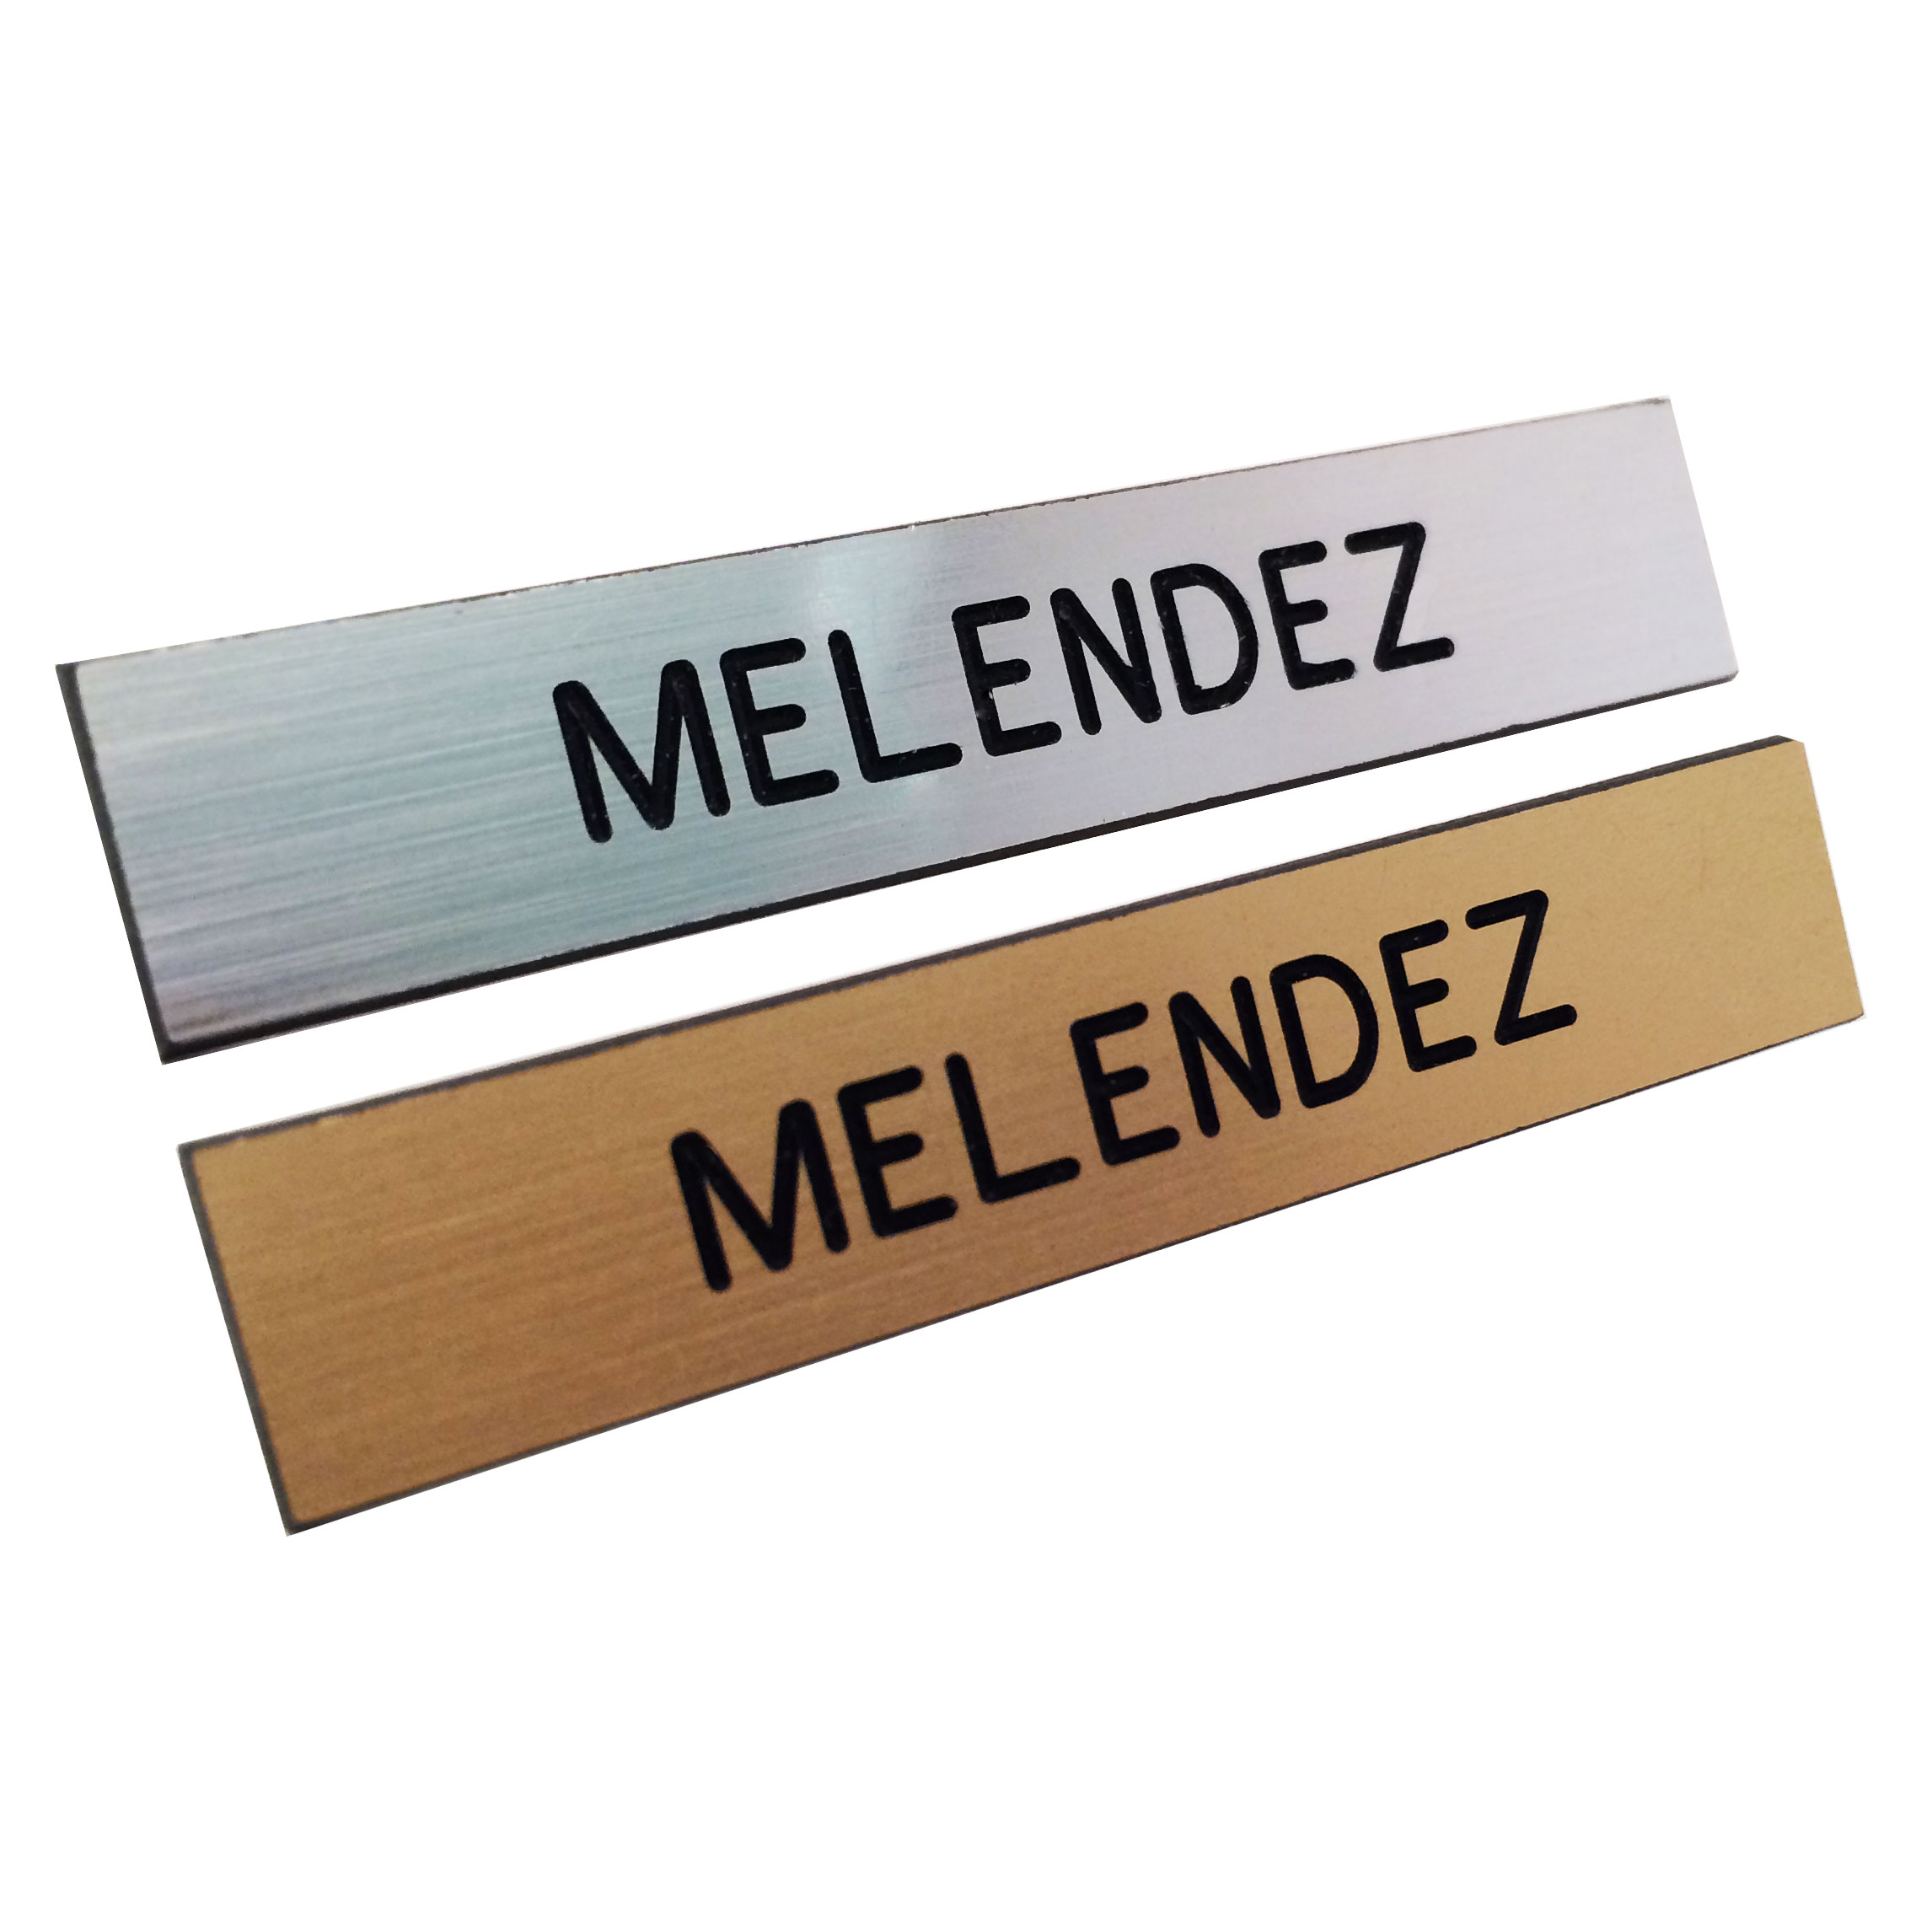 One Line Engraved on Gold or Silver Plastic